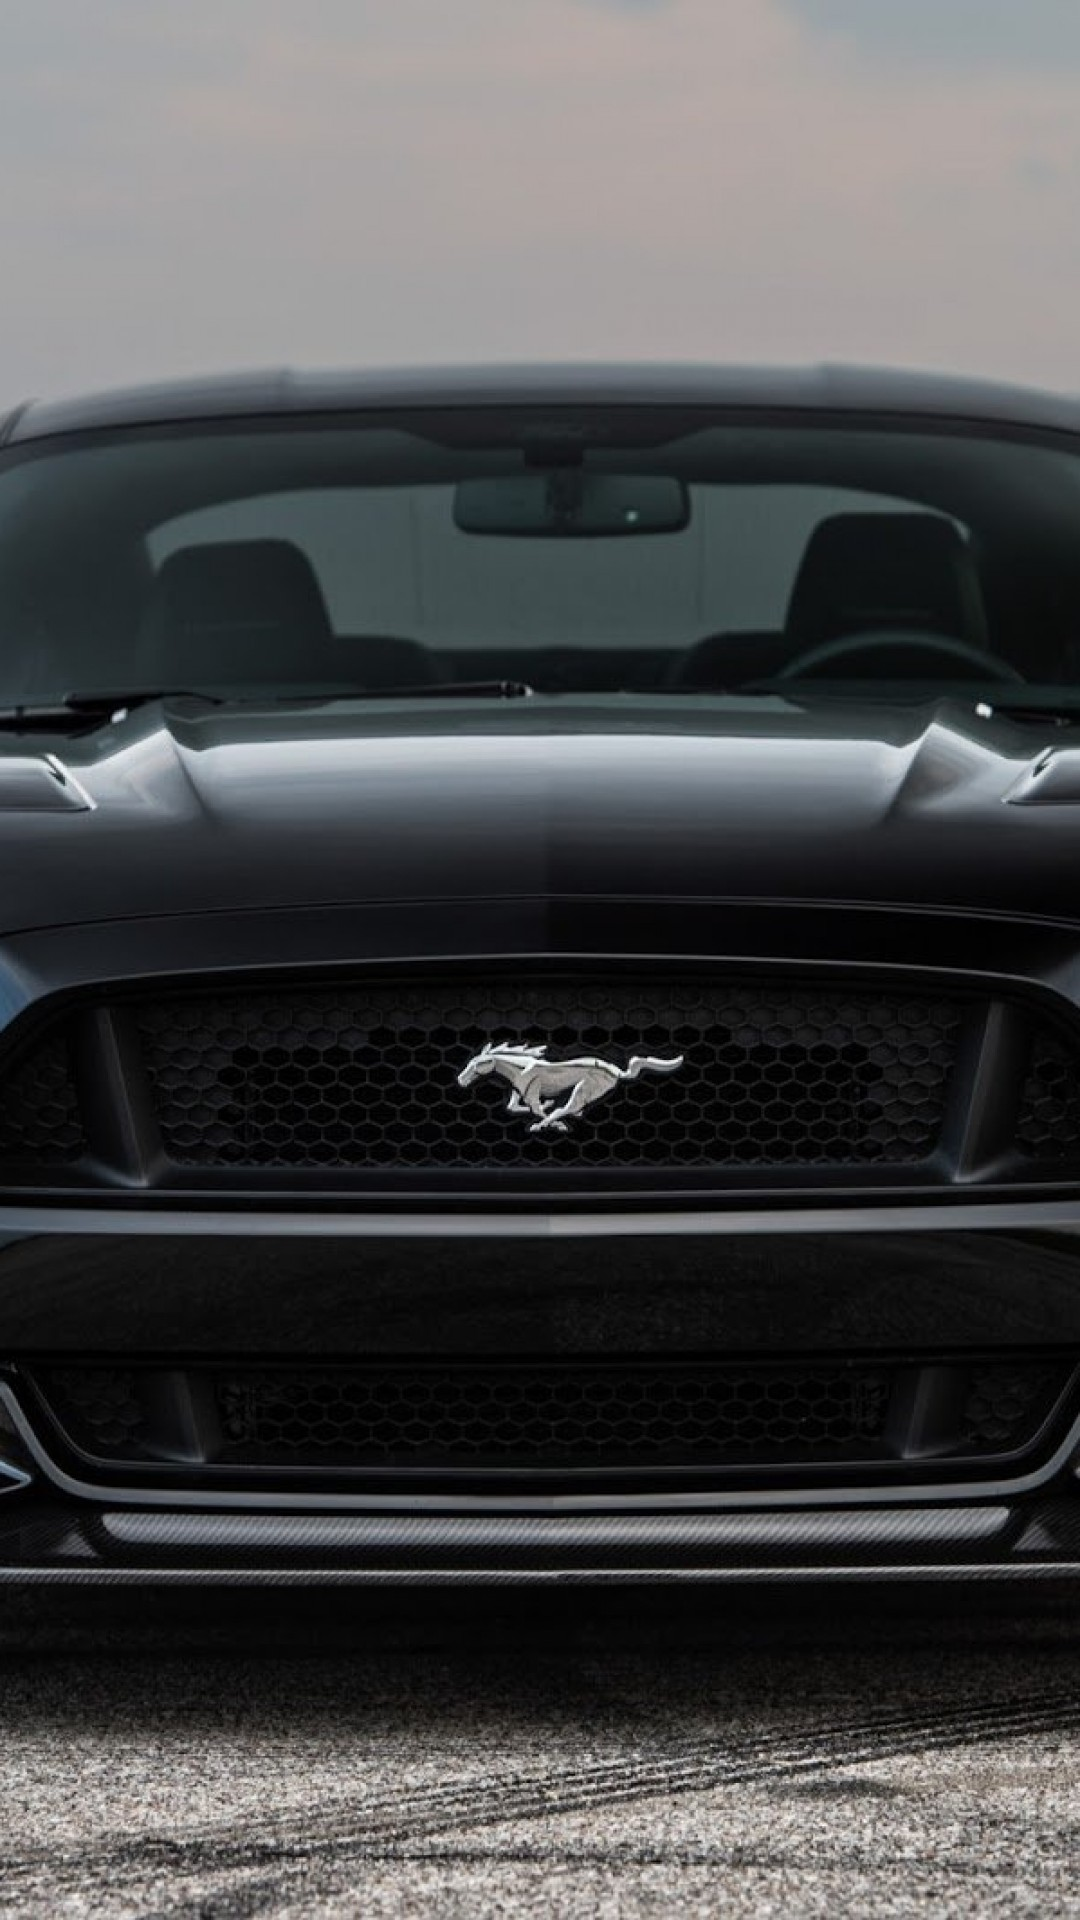 2560x1600 Wallpapers For Ford Mustang Logo Wallpaper Iphone